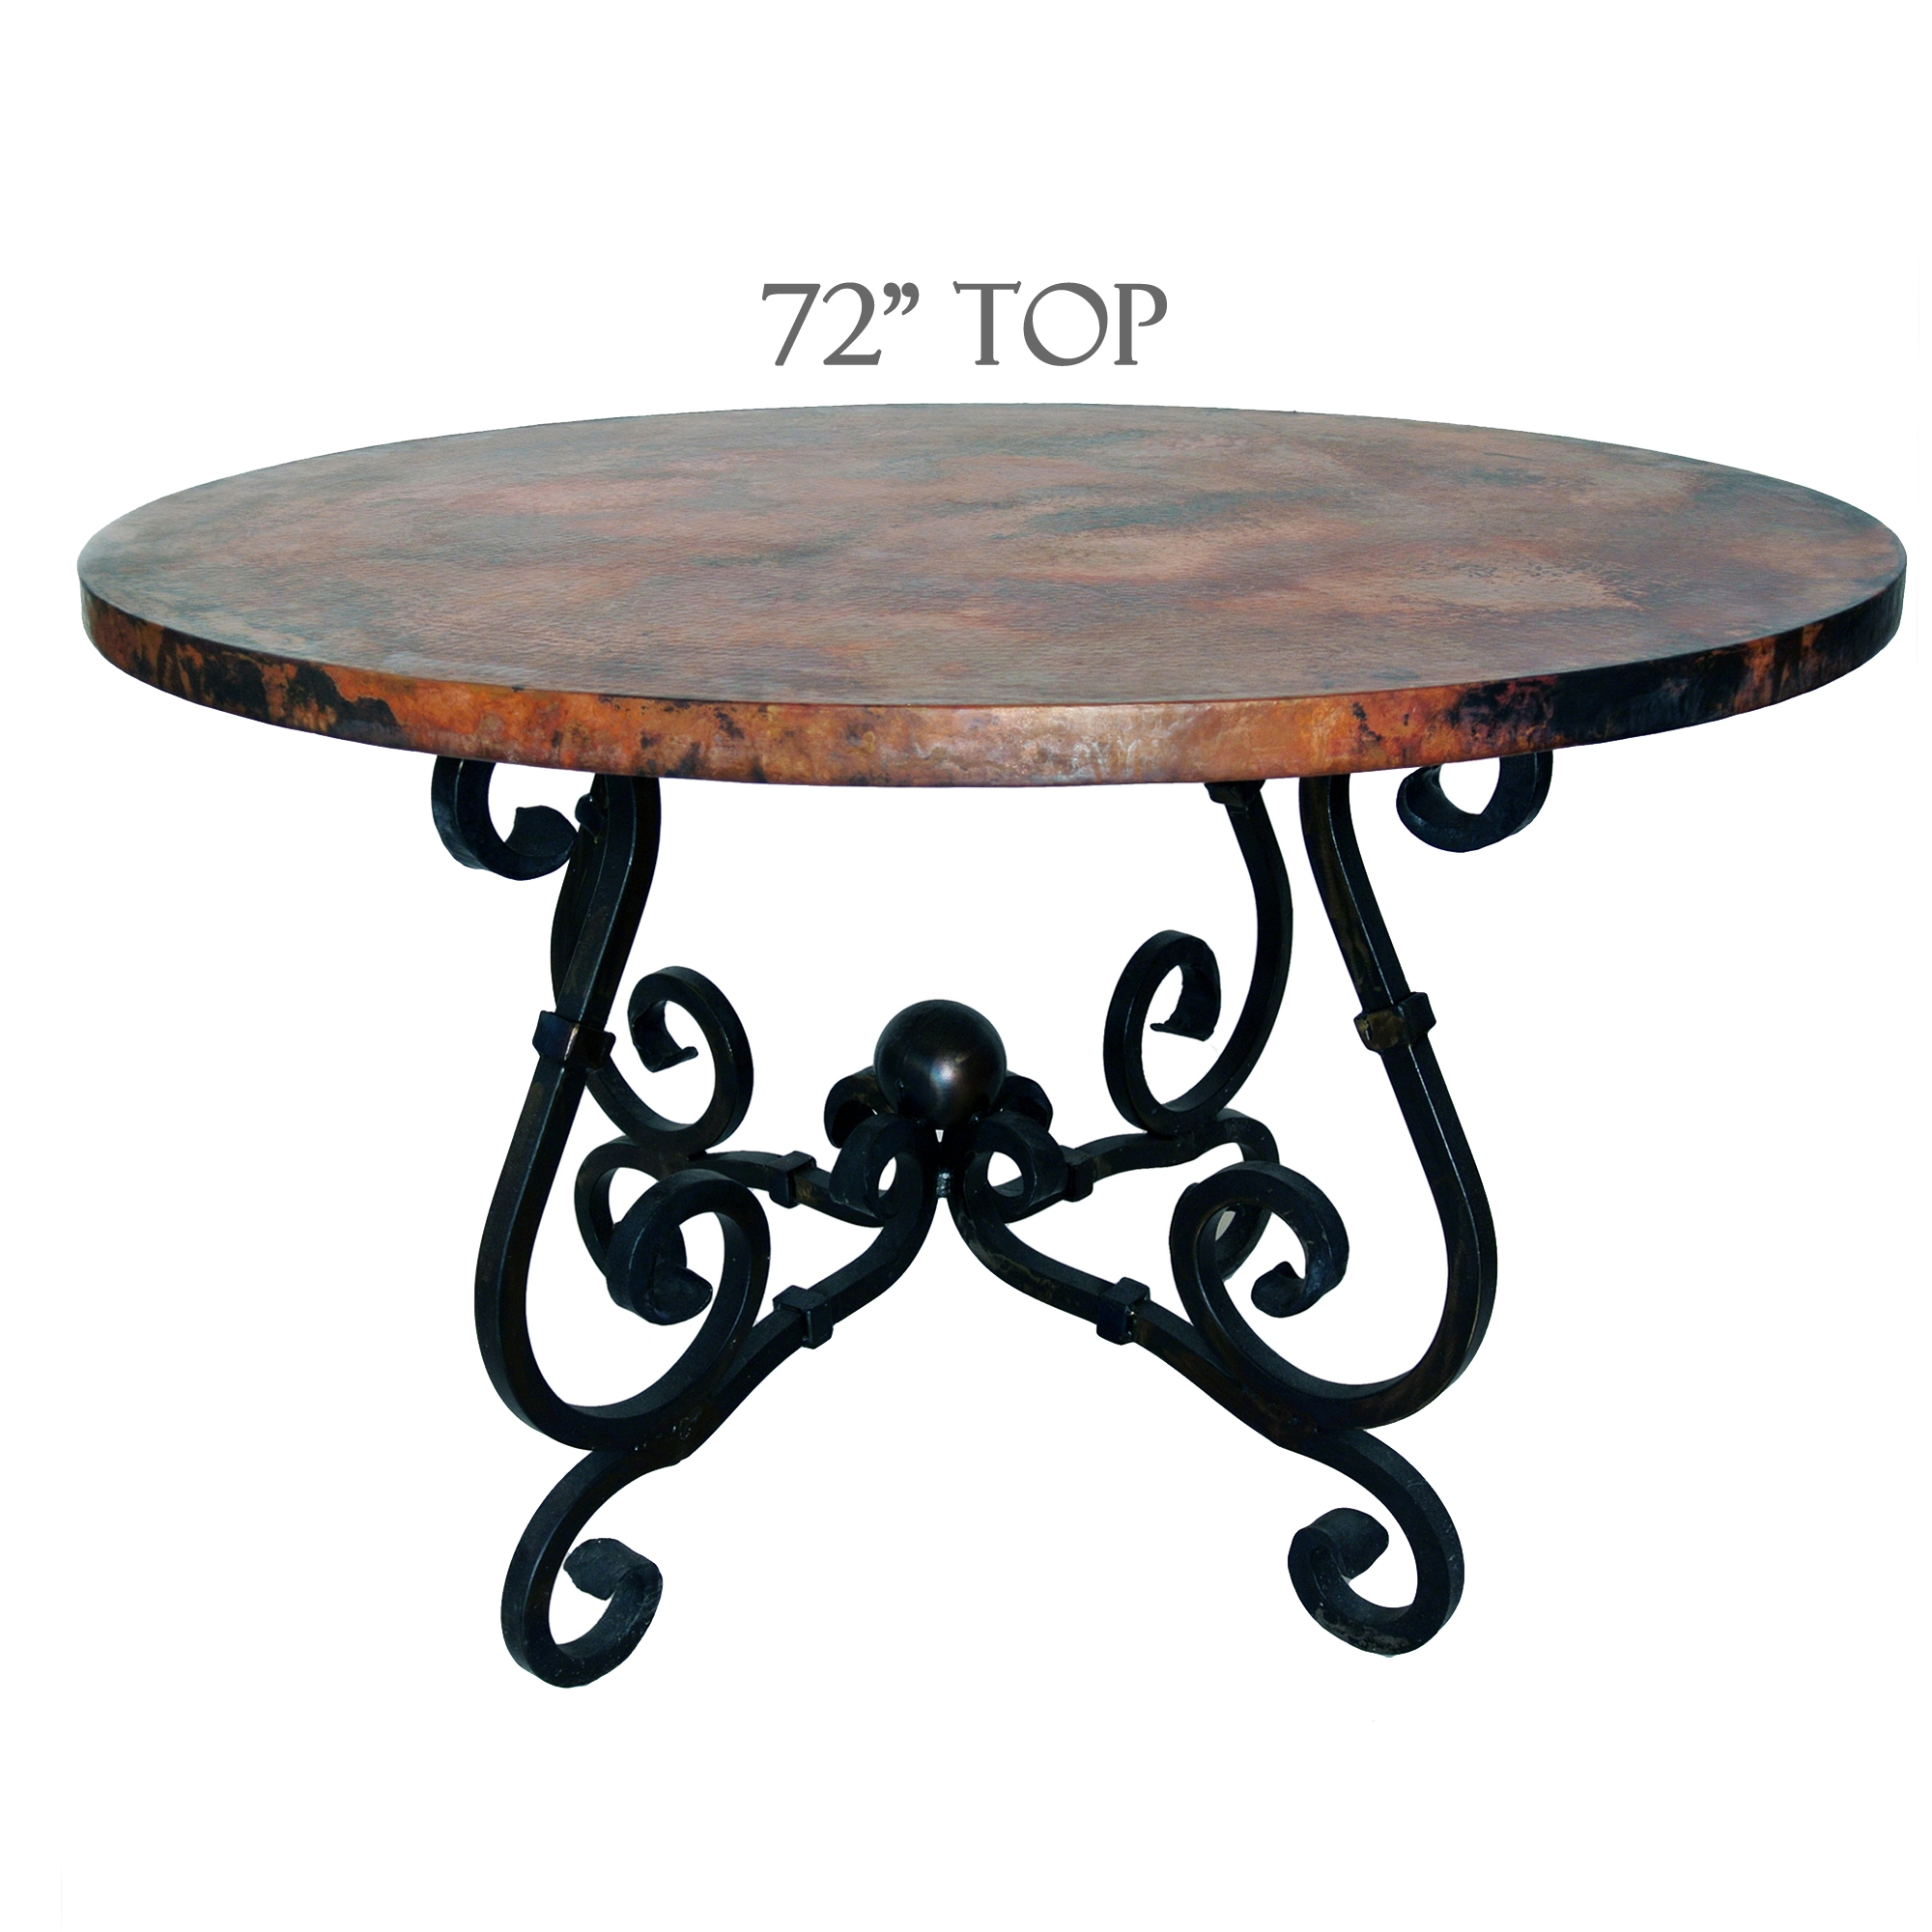 French dining table 72in diameter copper top timeless for Ornamental centrepiece for a dining table